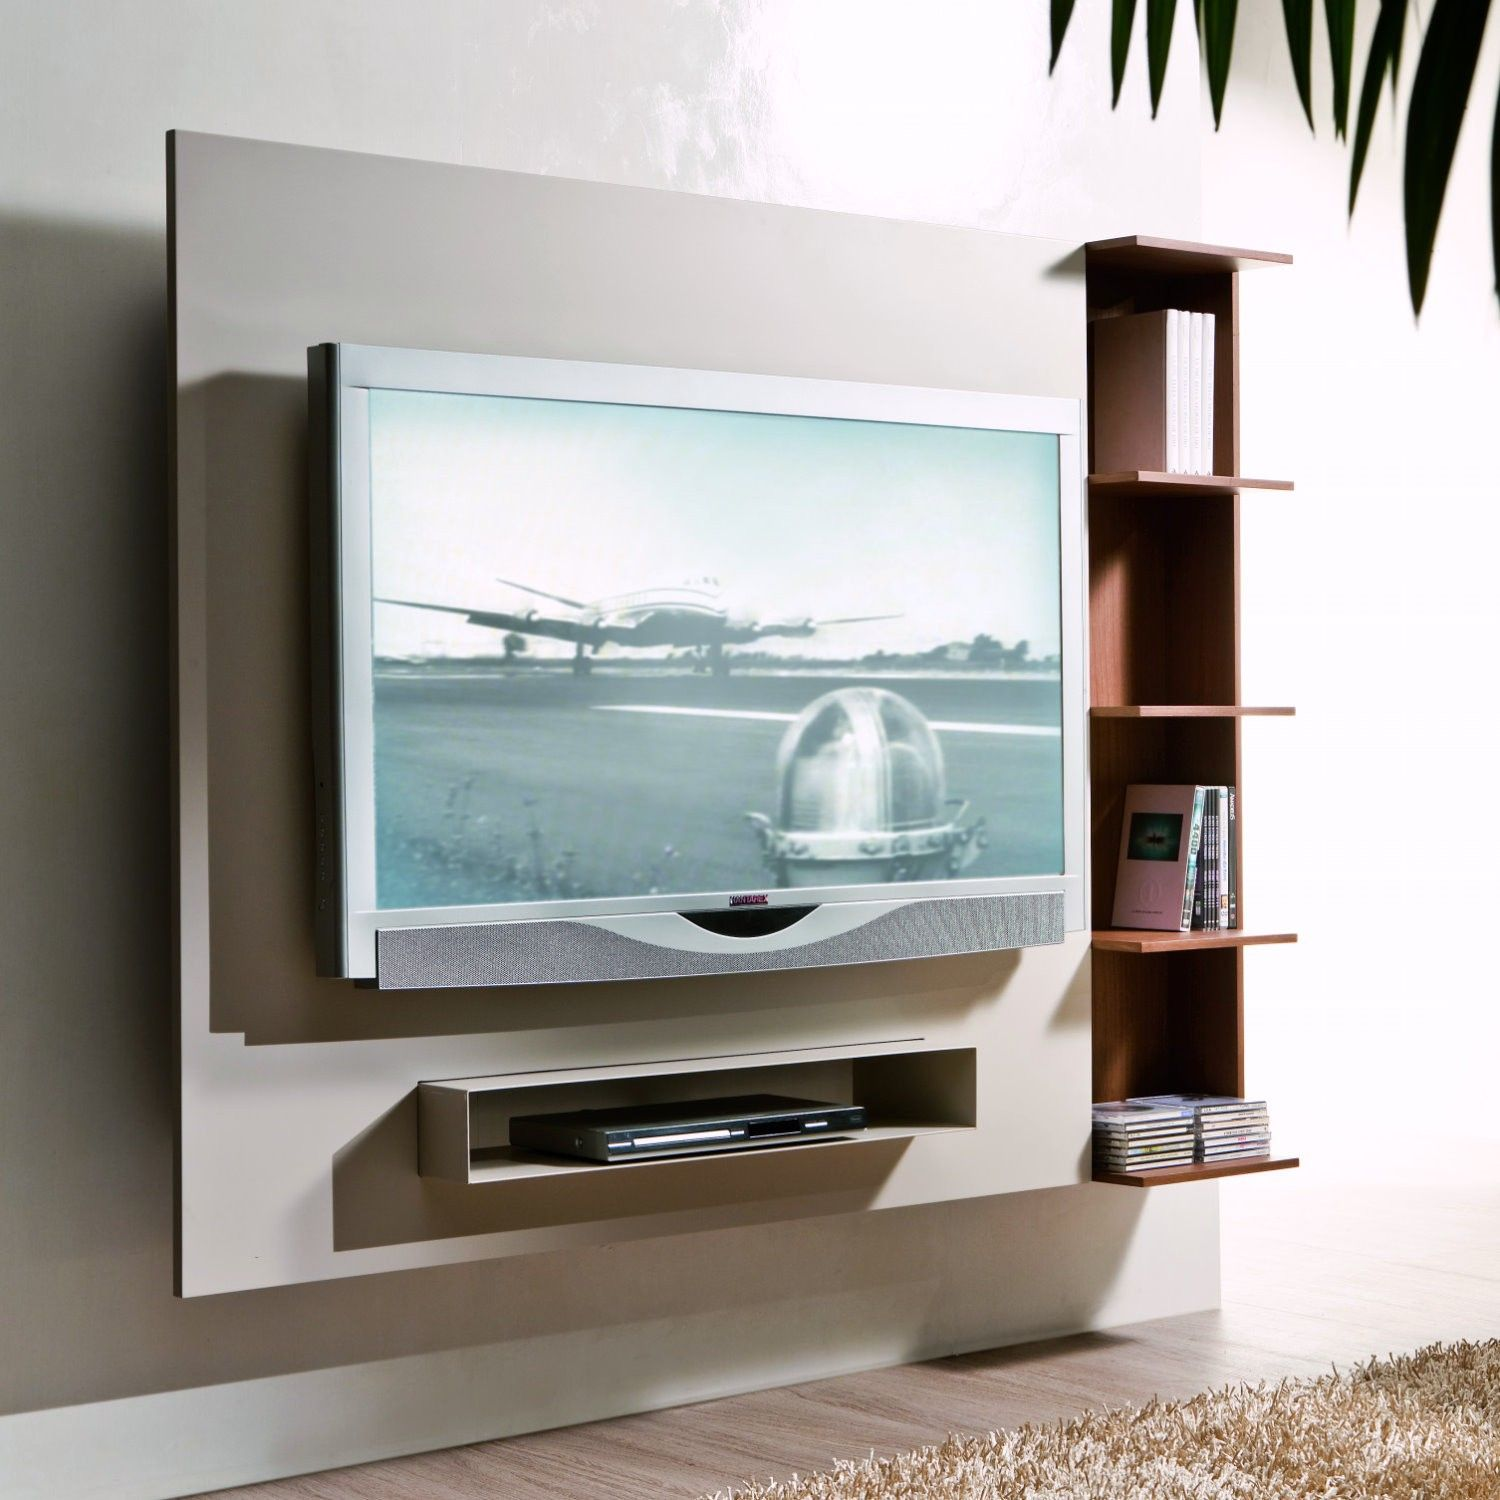 Porta tv orientabile a parete con libreria Ghost | tv | Pinterest ...